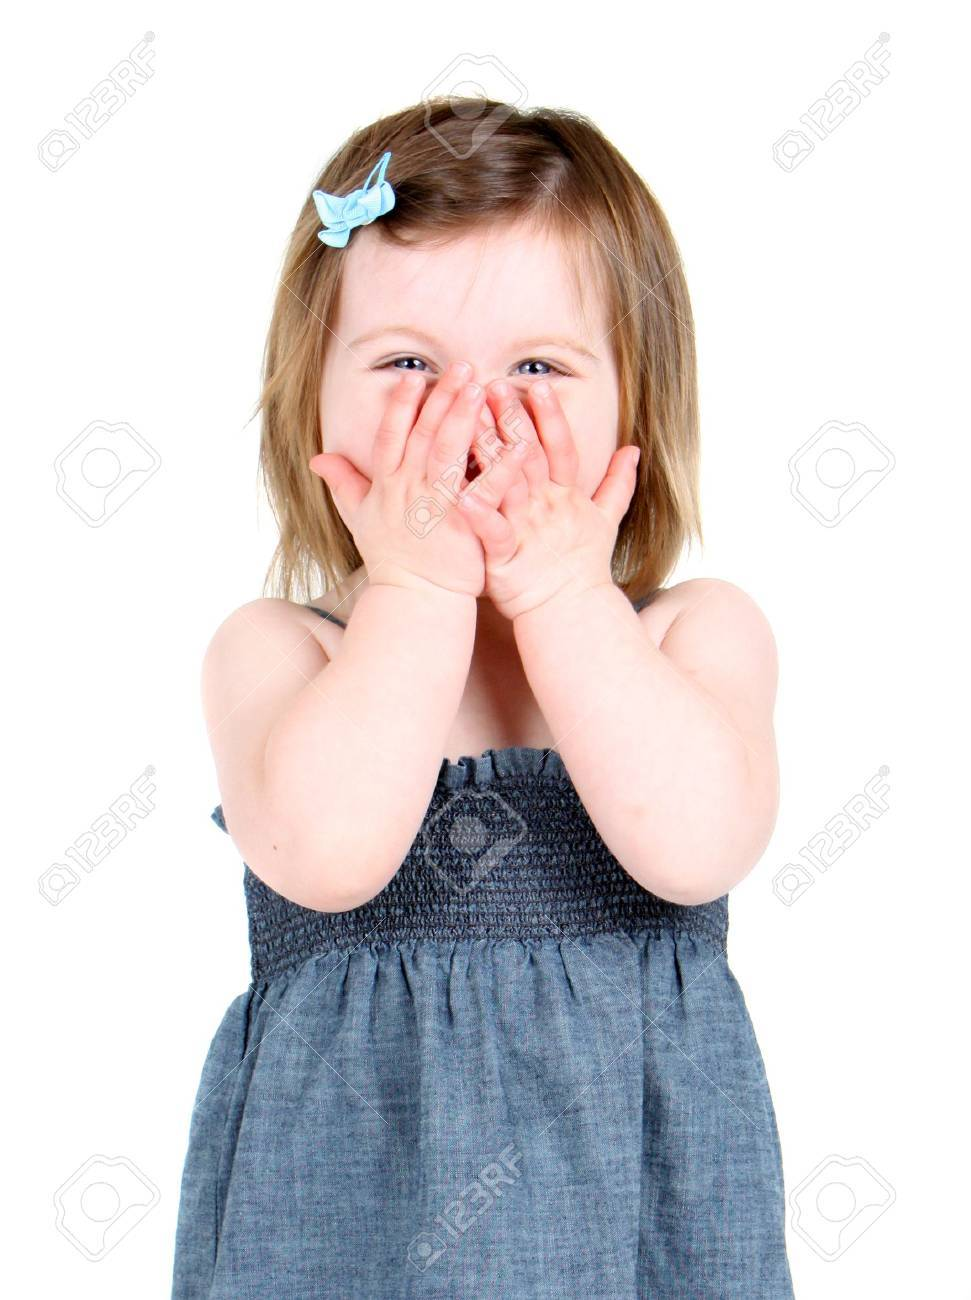 Cute little girl holding her hands over her mouth Stock Photo - 7459130